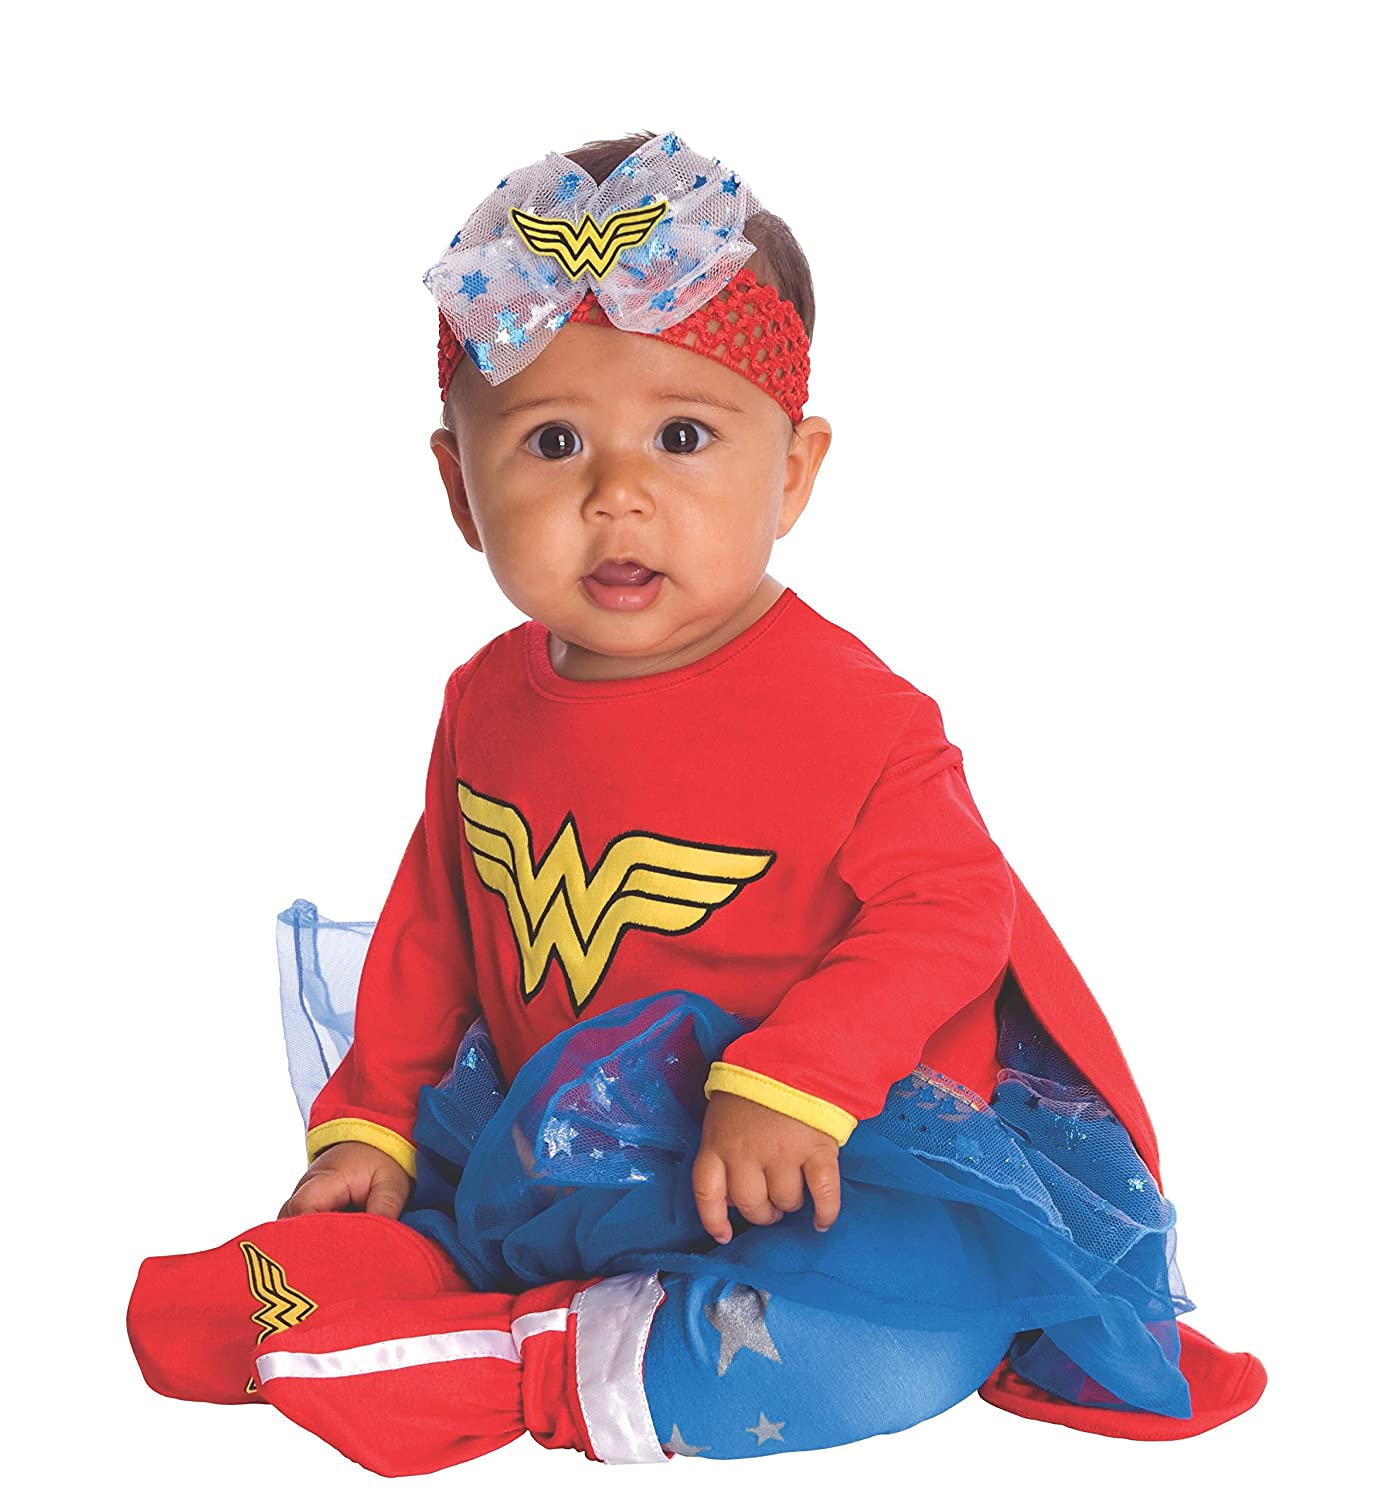 DC Comics Baby Wonder Woman Onesie And Headpiece Rubies Costumes - Apparel